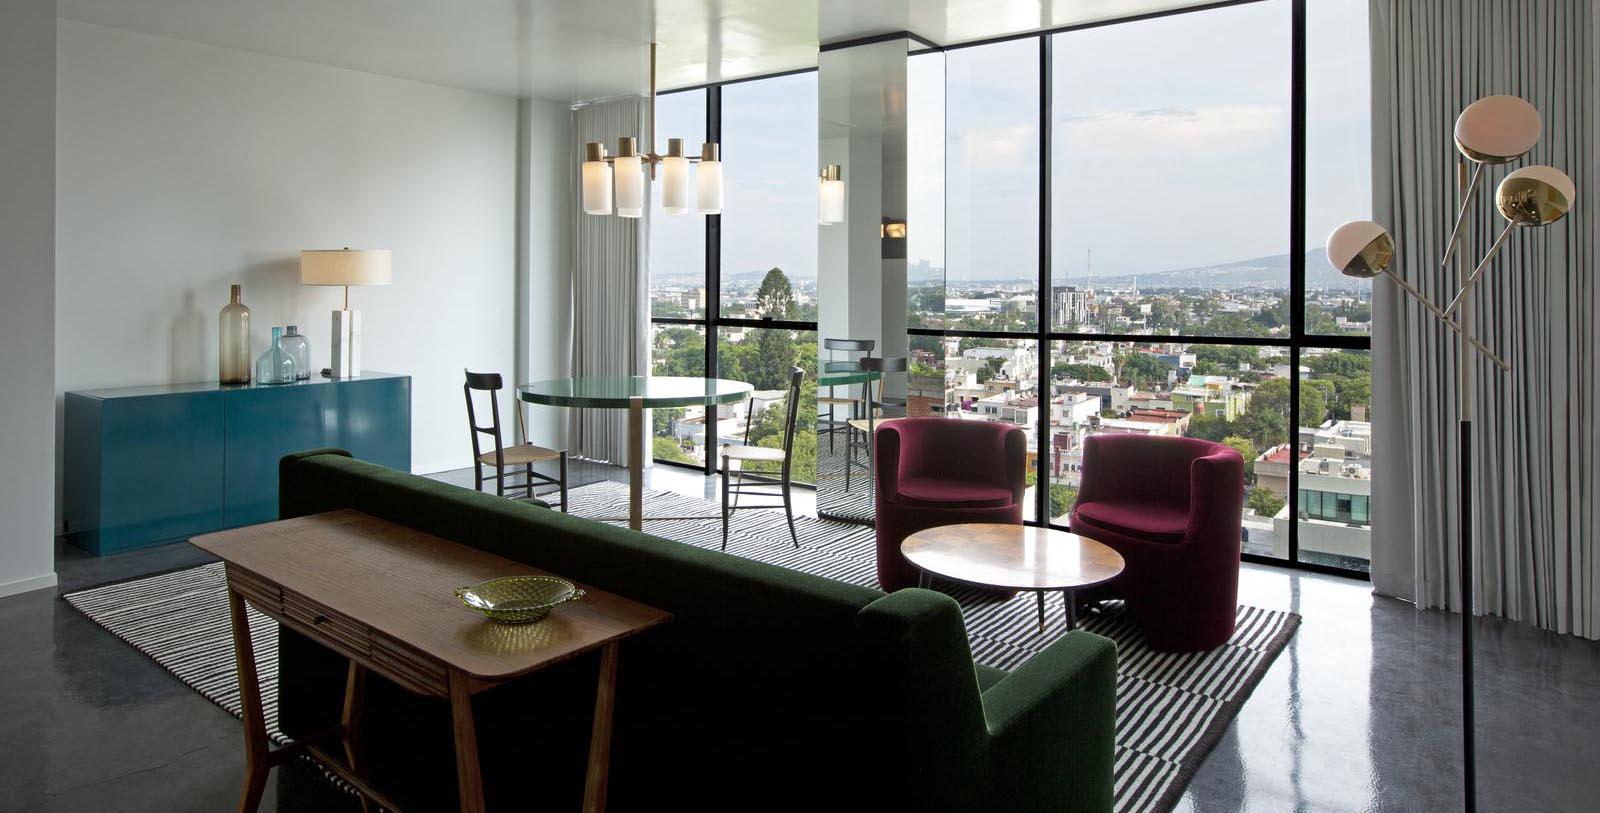 Image of hotel suite seating area Casa Habita, 1938, Member of Historic Hotels Worldwide, in Guadalajara, Mexico, Special Offers, Discounted Rates, Families, Romantic Escape, Honeymoons, Anniversaries, Reunions